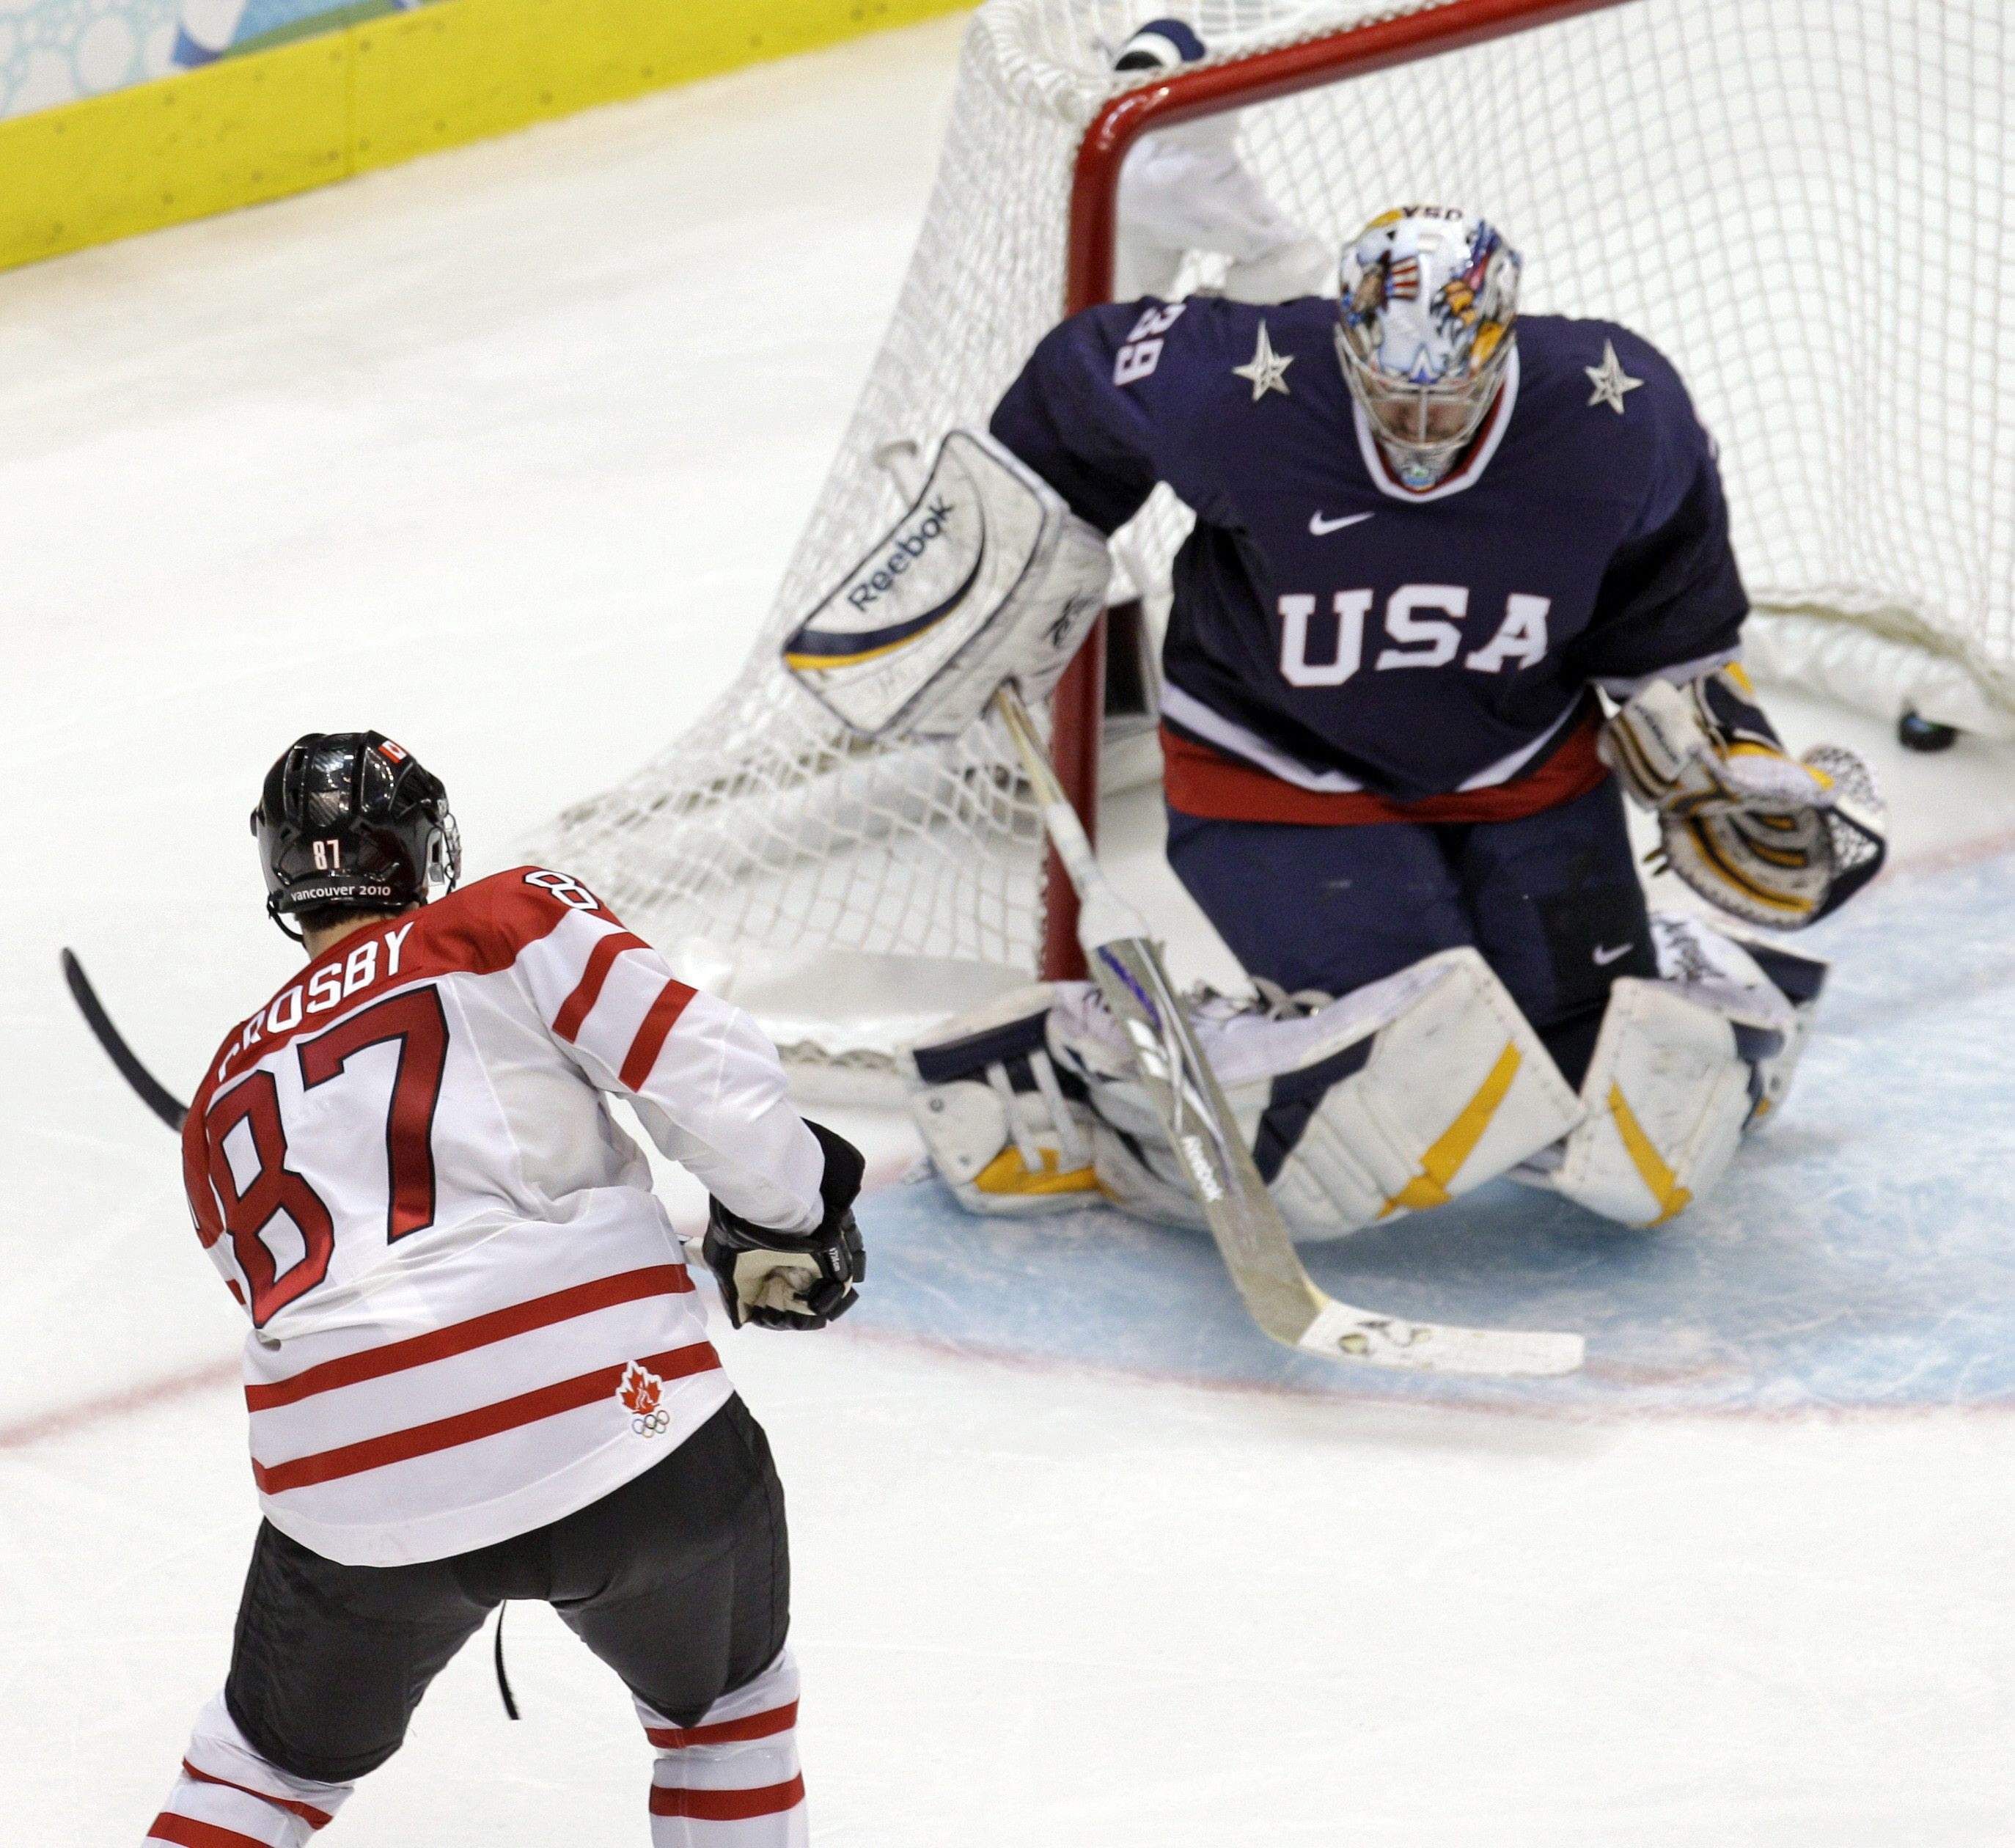 Sidney Crosby scores a goal against the USA